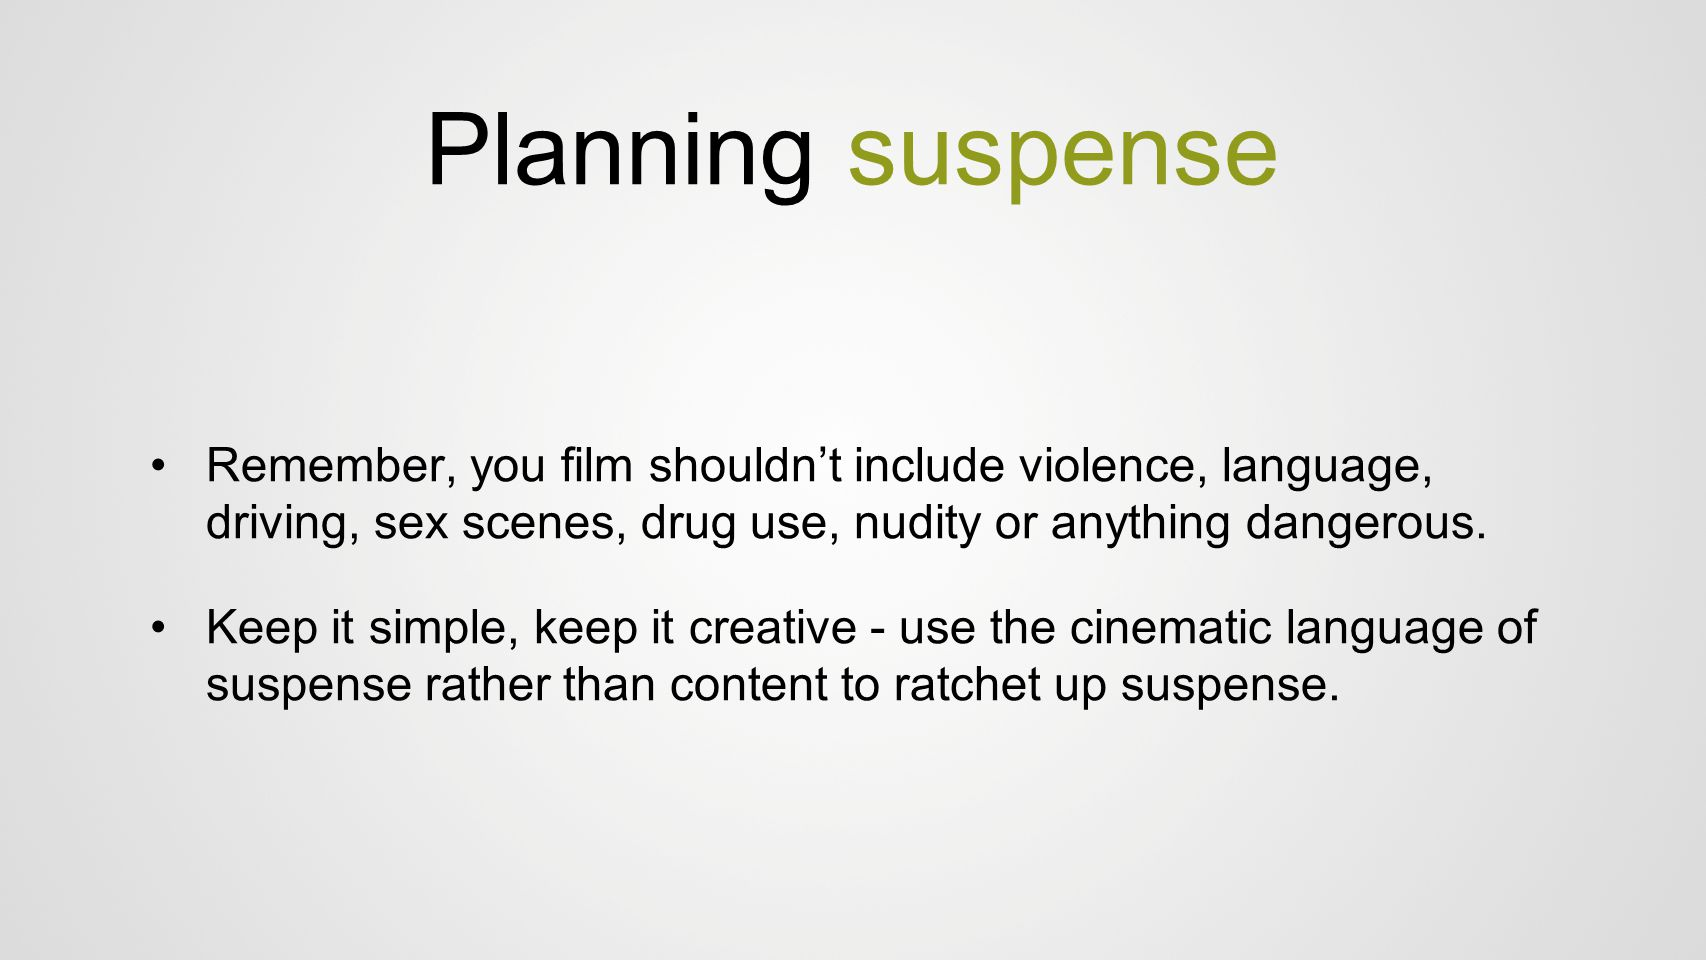 Planning suspense Remember, you film shouldn't include violence, language, driving, sex scenes, drug use, nudity or anything dangerous.